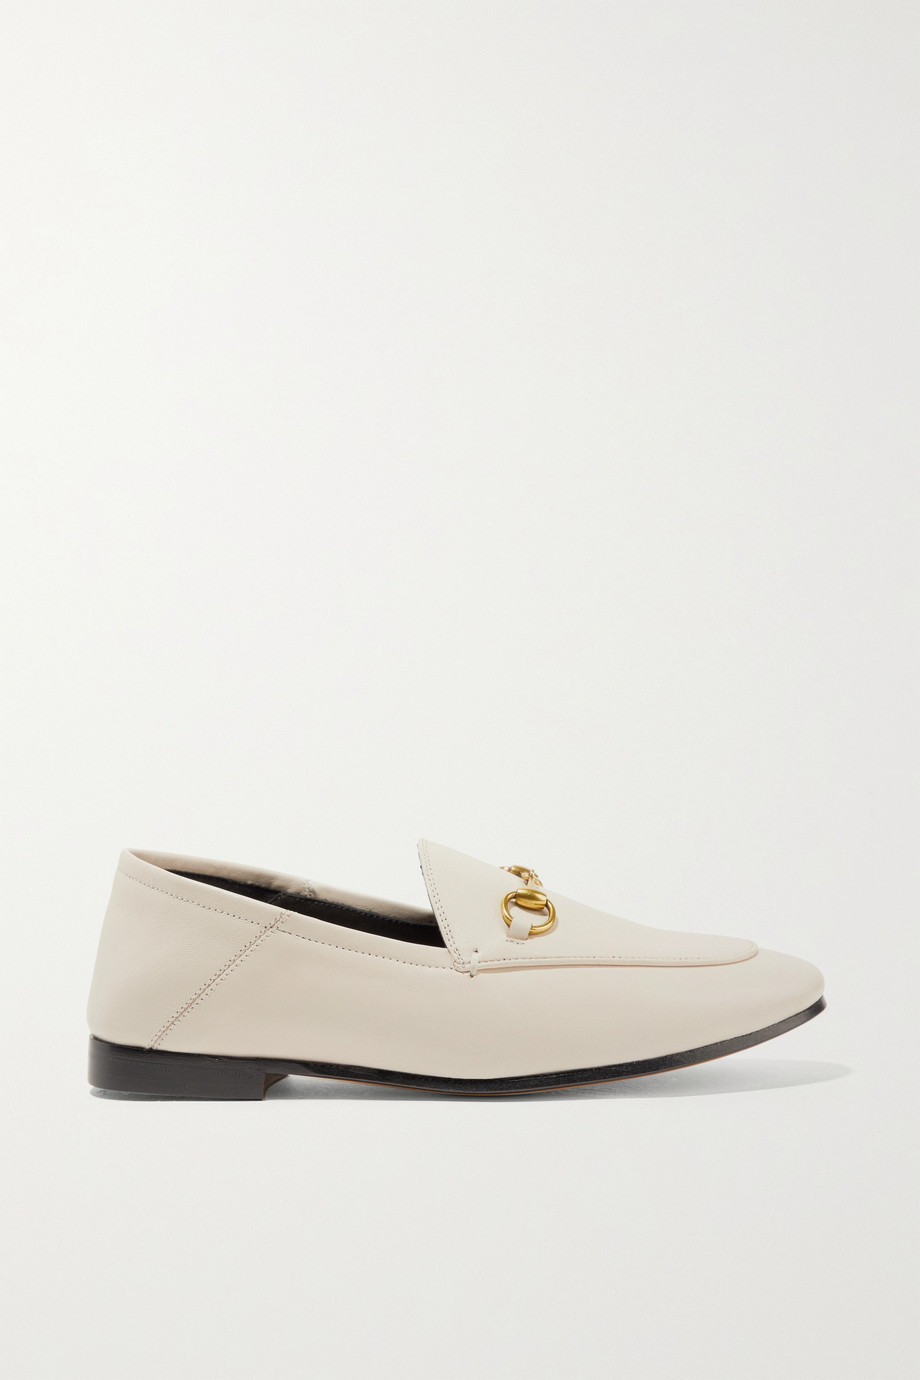 Gucci Brixton horsebit-detailed leather collapsible-heel loafers